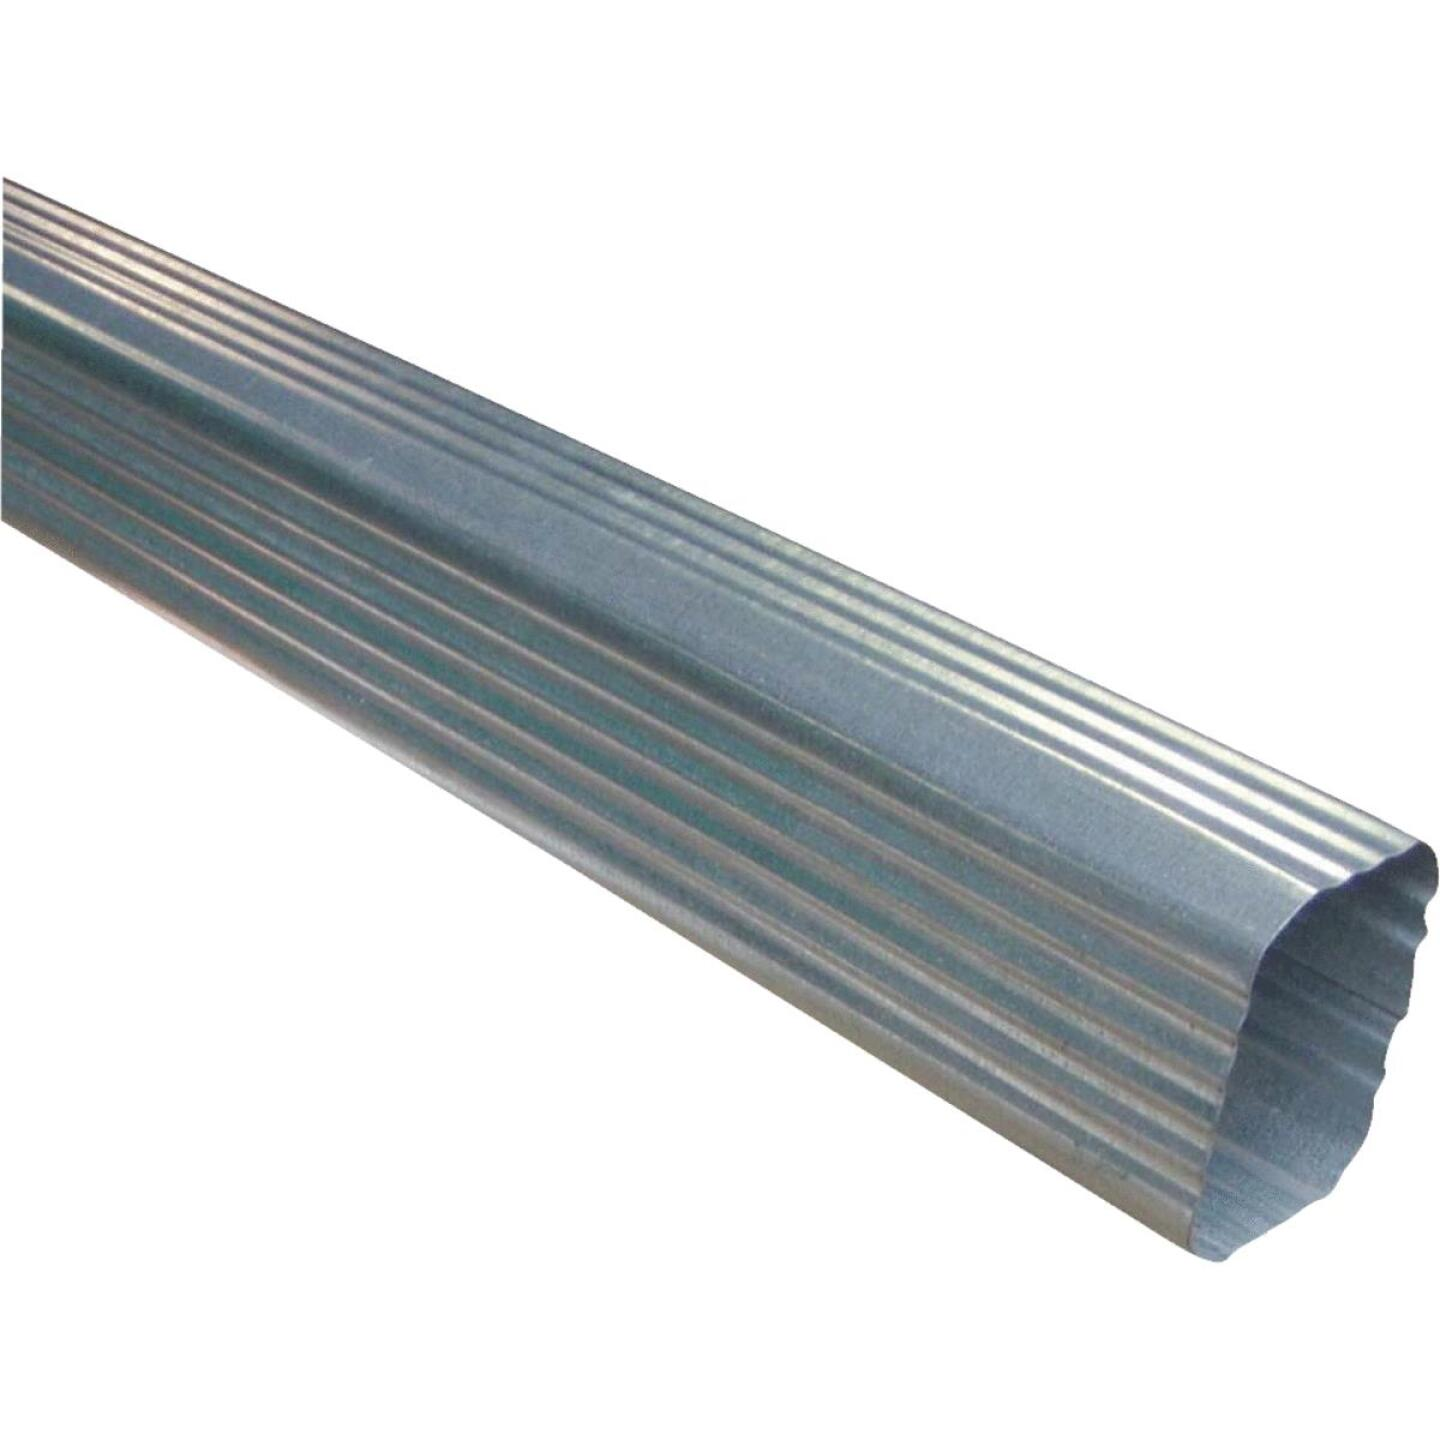 NorWesco 2-3/8 In. x 3-1/4 In. Galvanized Downspout Image 1